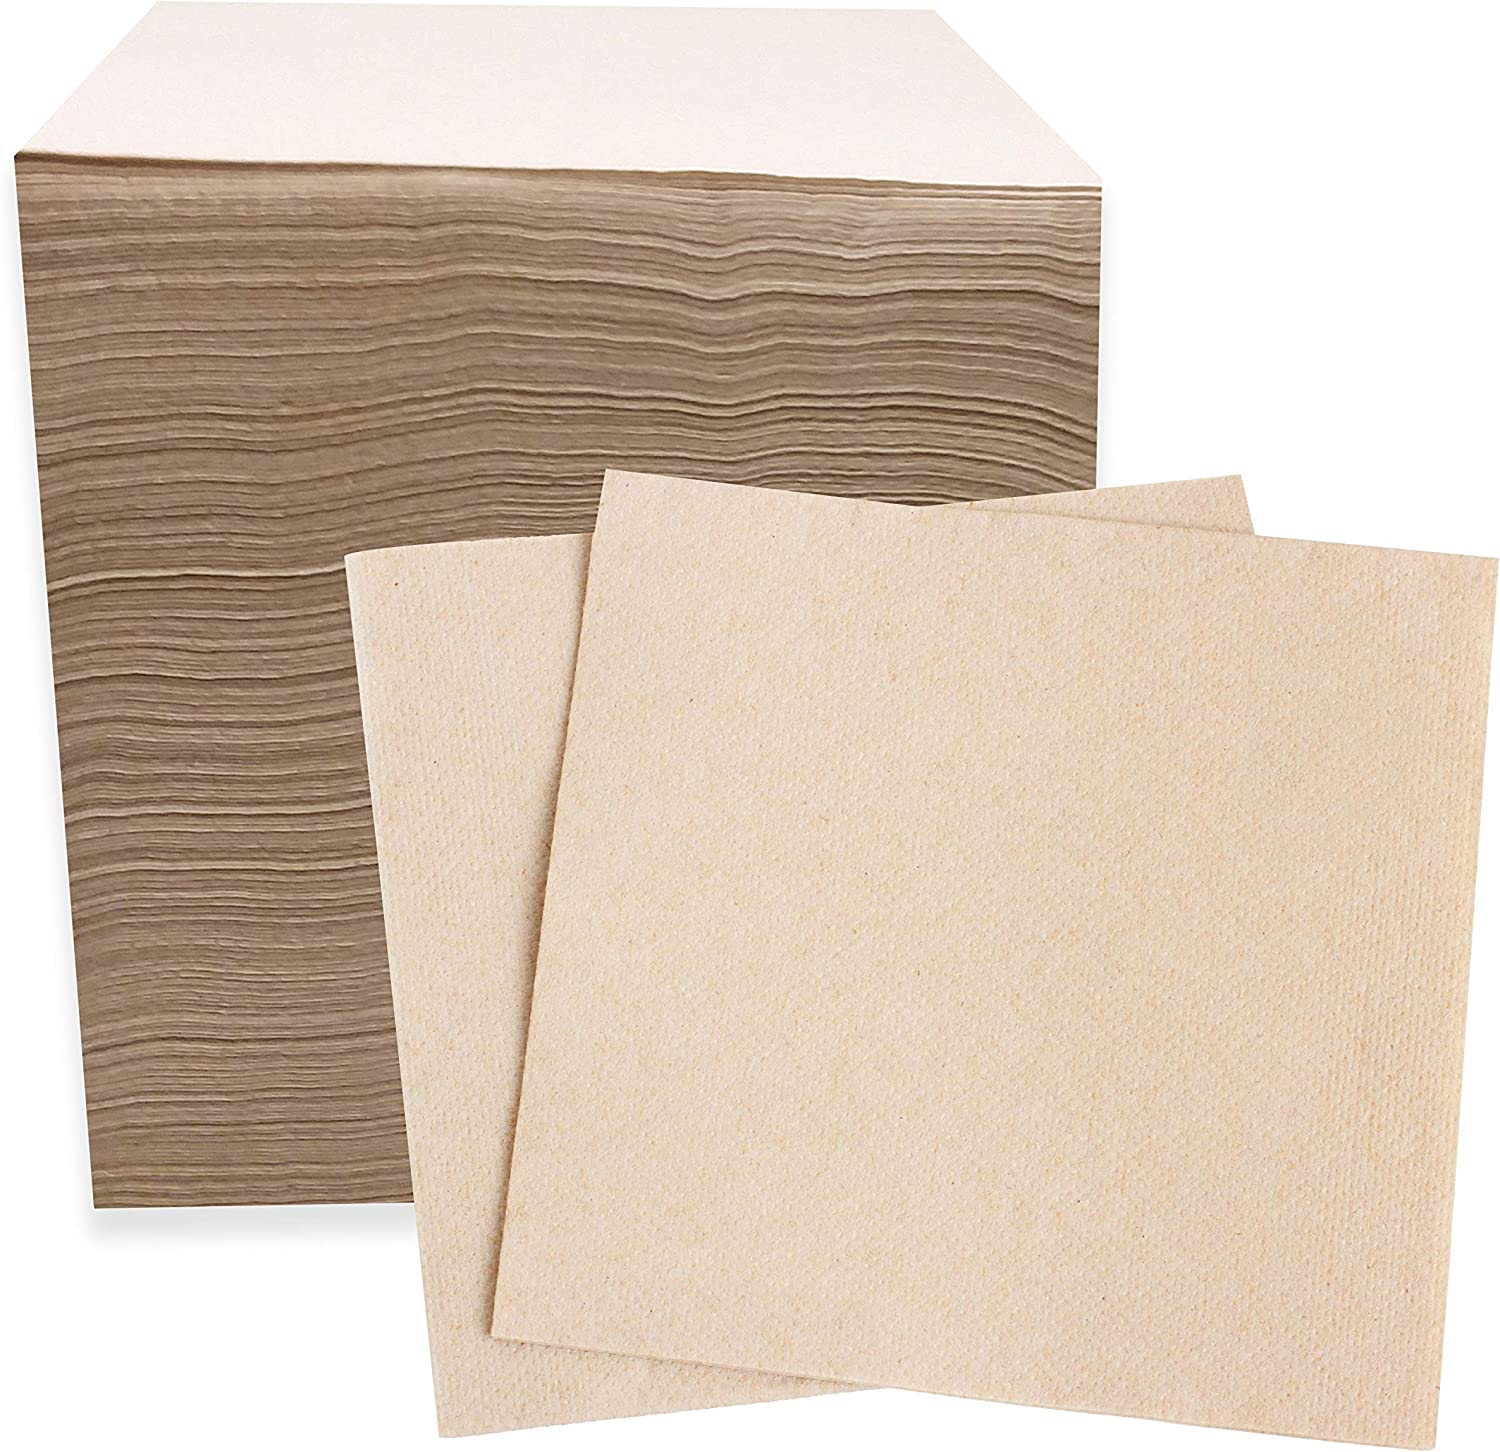 Recycled Post Consumer Napkins, 250 Compostable Eco Lunch Biodegradable Napkins